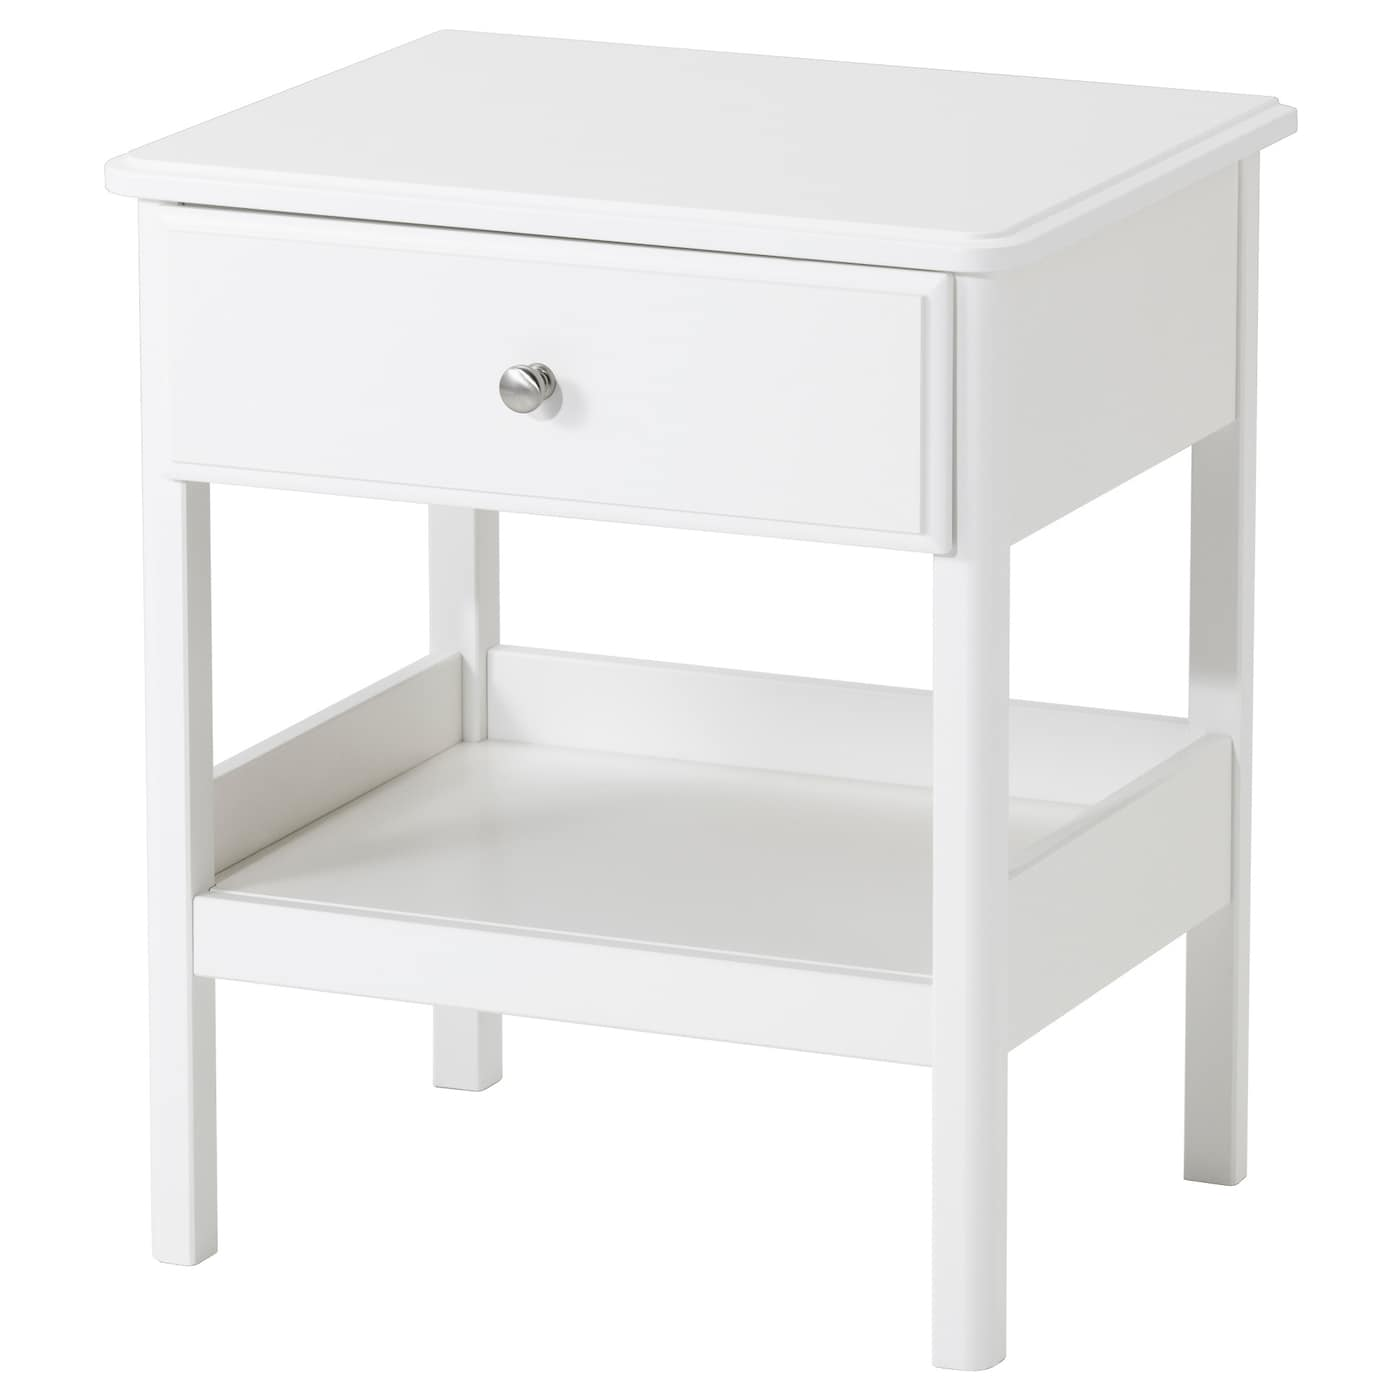 Tyssedal bedside table white 51x40 cm ikea for Mesitas de noche hemnes